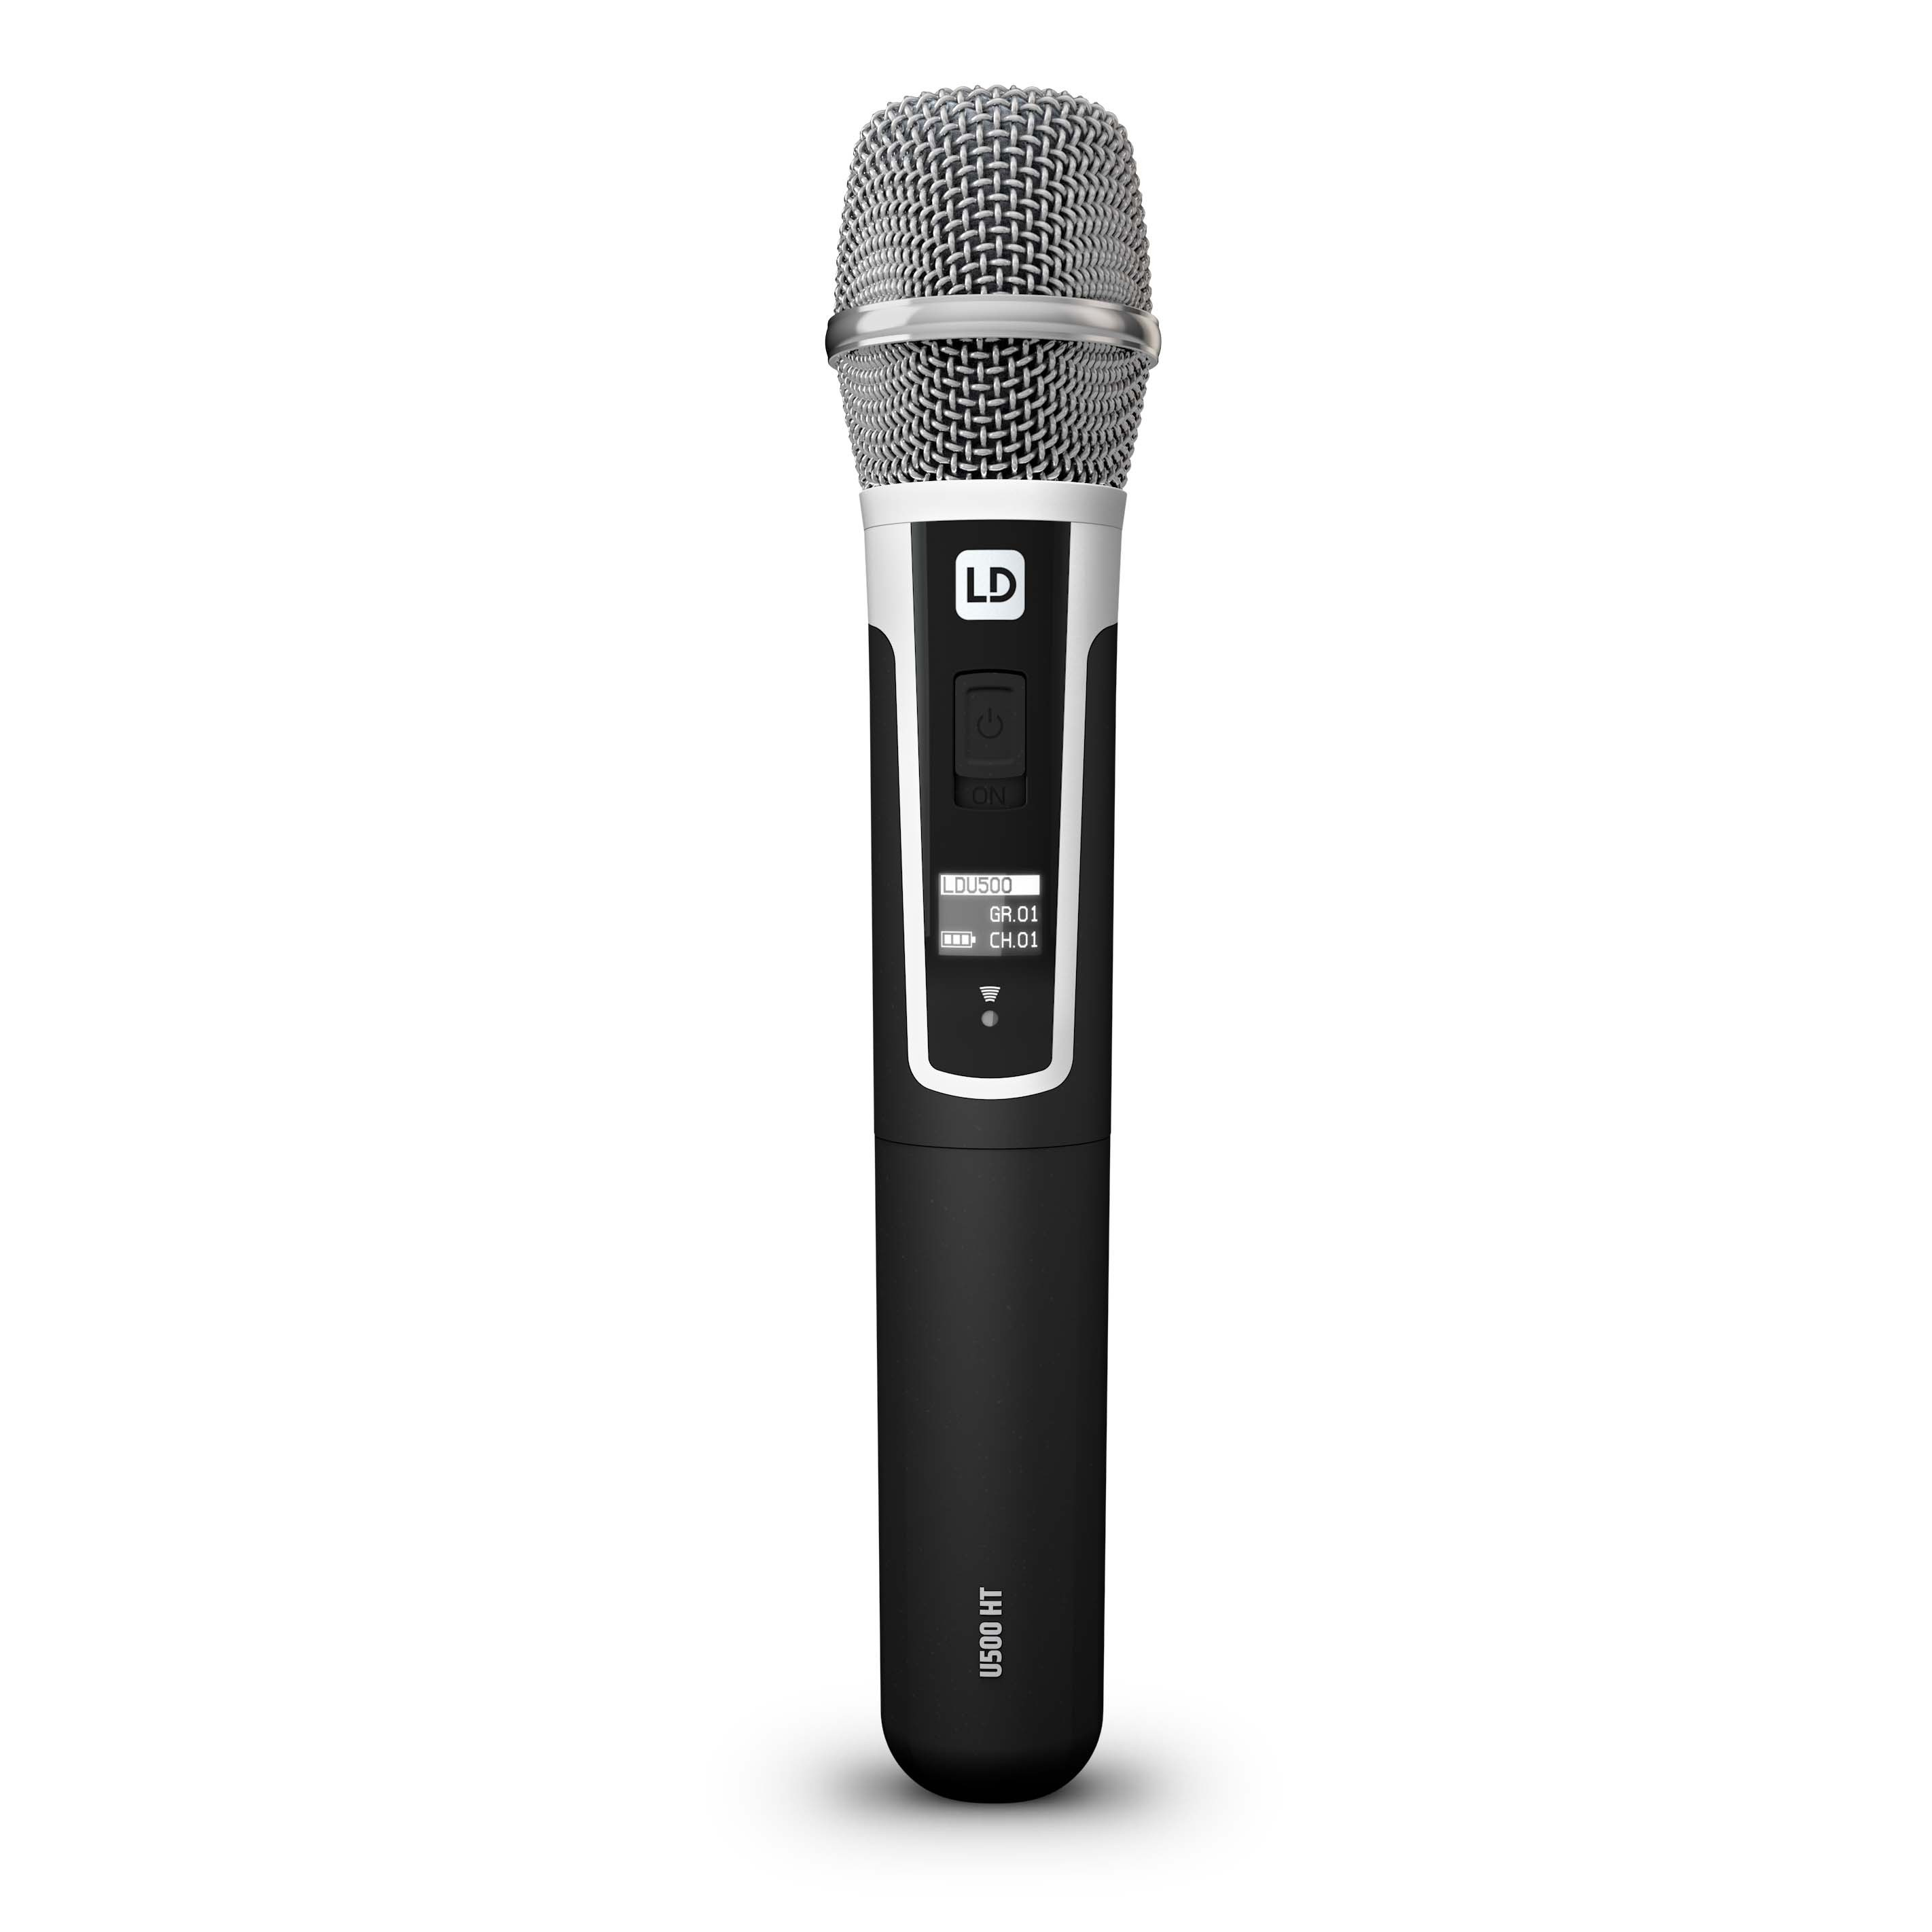 U518 HHC 2 Wireless Microphone System with 2 x Condenser Handheld Microphone